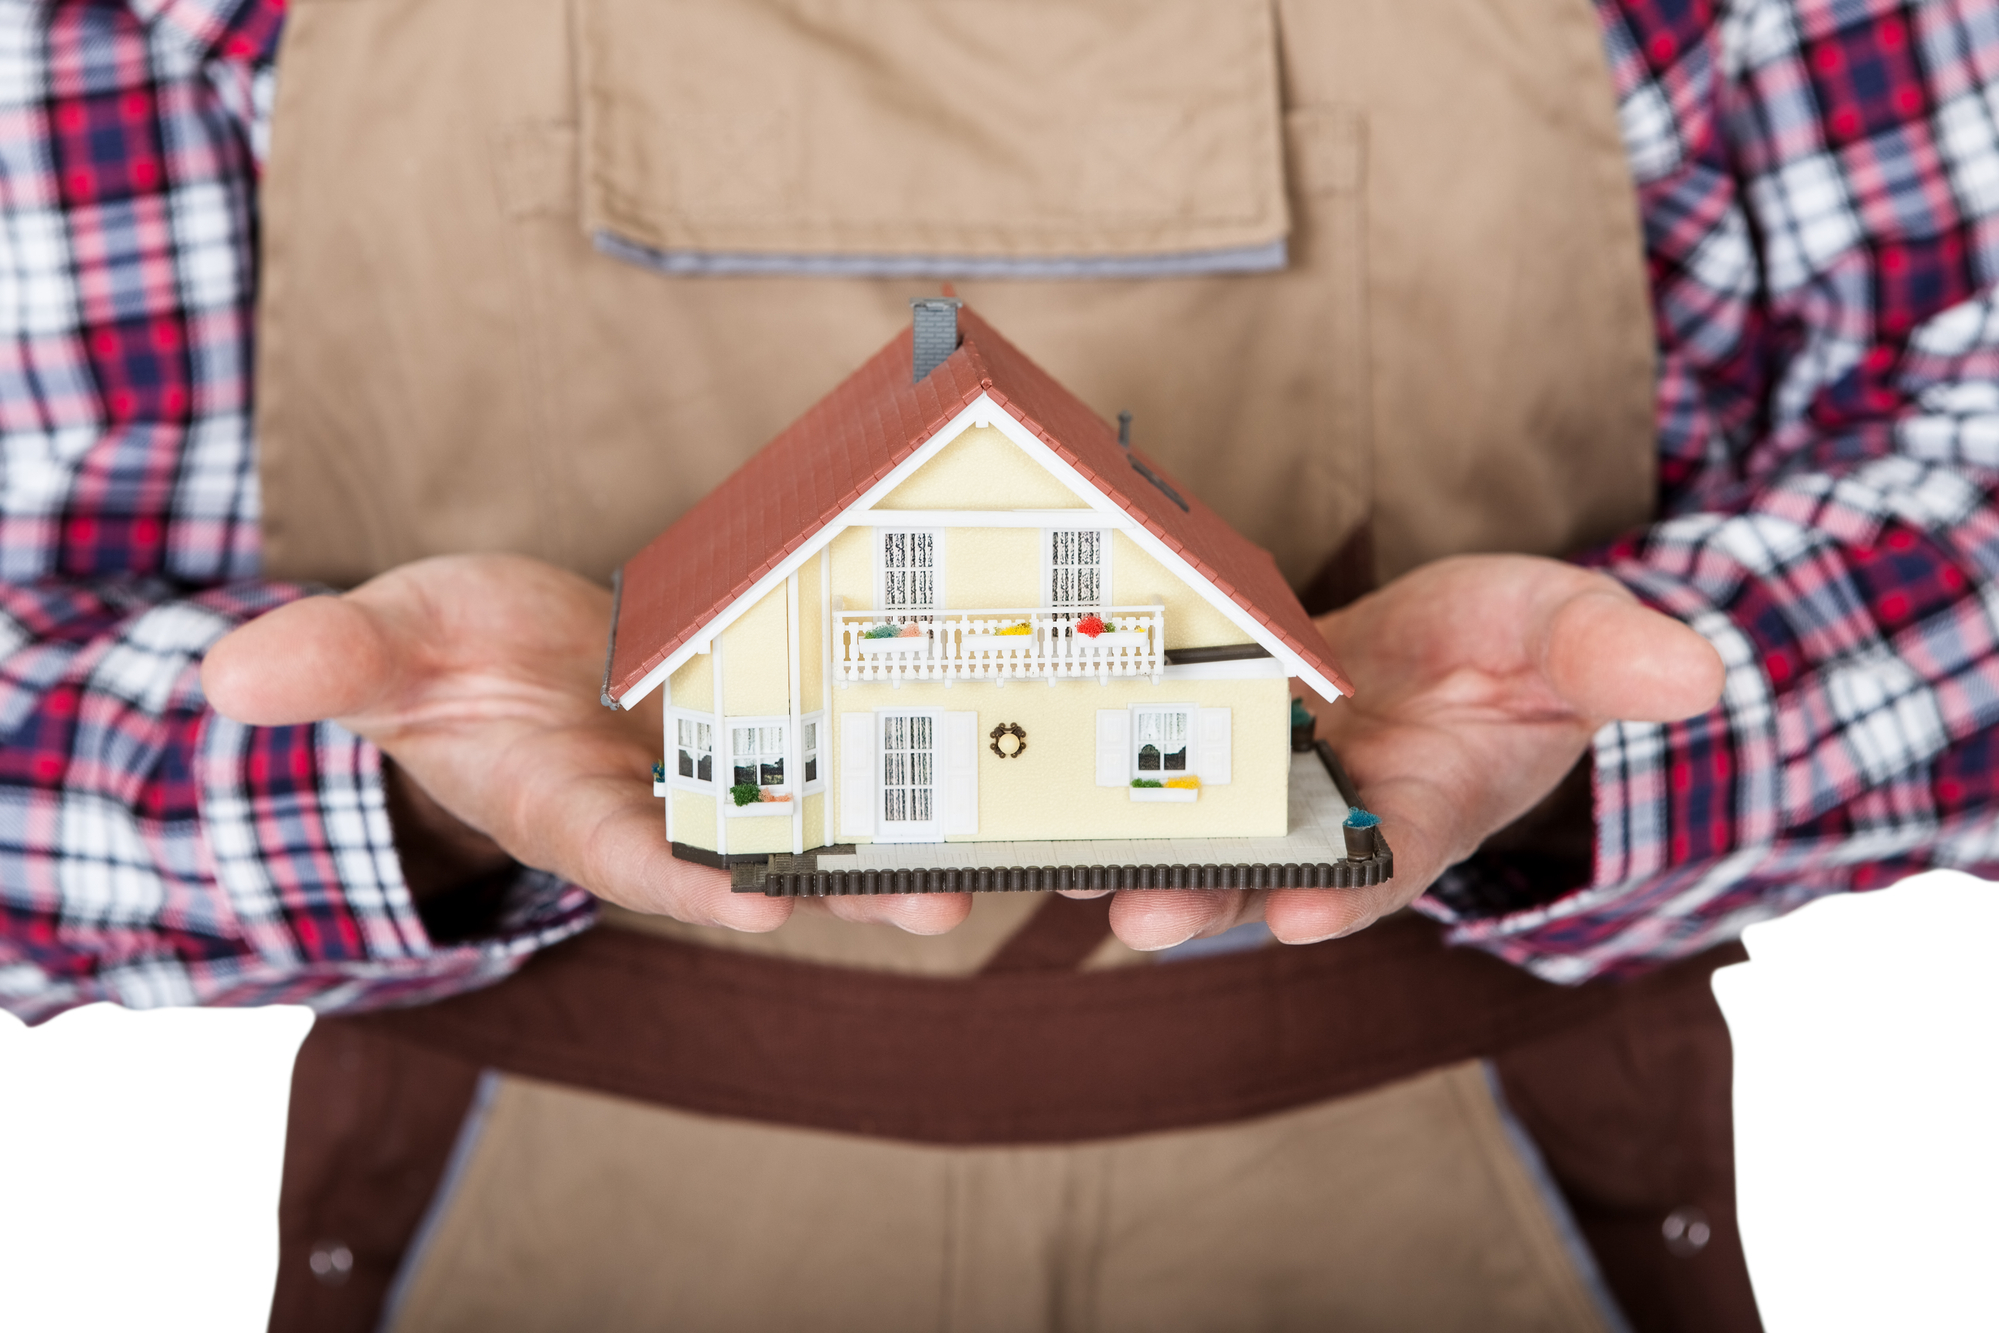 Construction worker holding house model